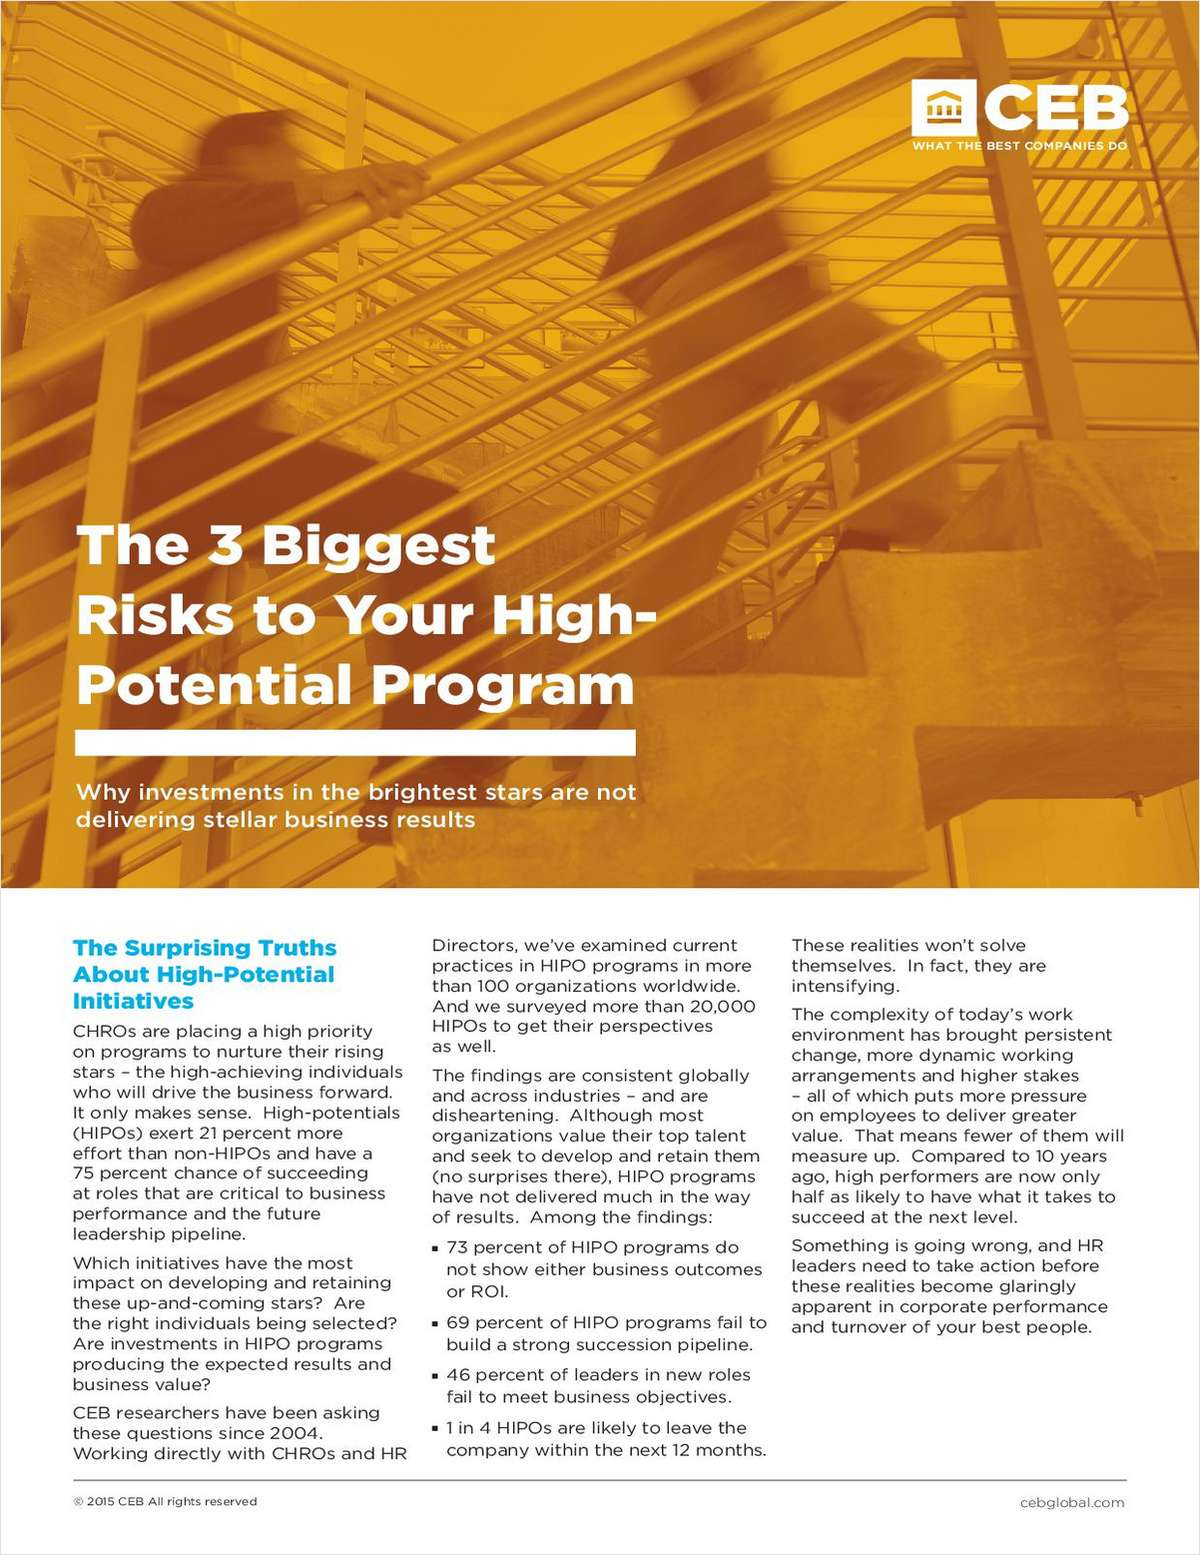 The 3 Biggest Risks to Your High-Potential Program: Why investments in the brightest stars are not delivering stellar business results